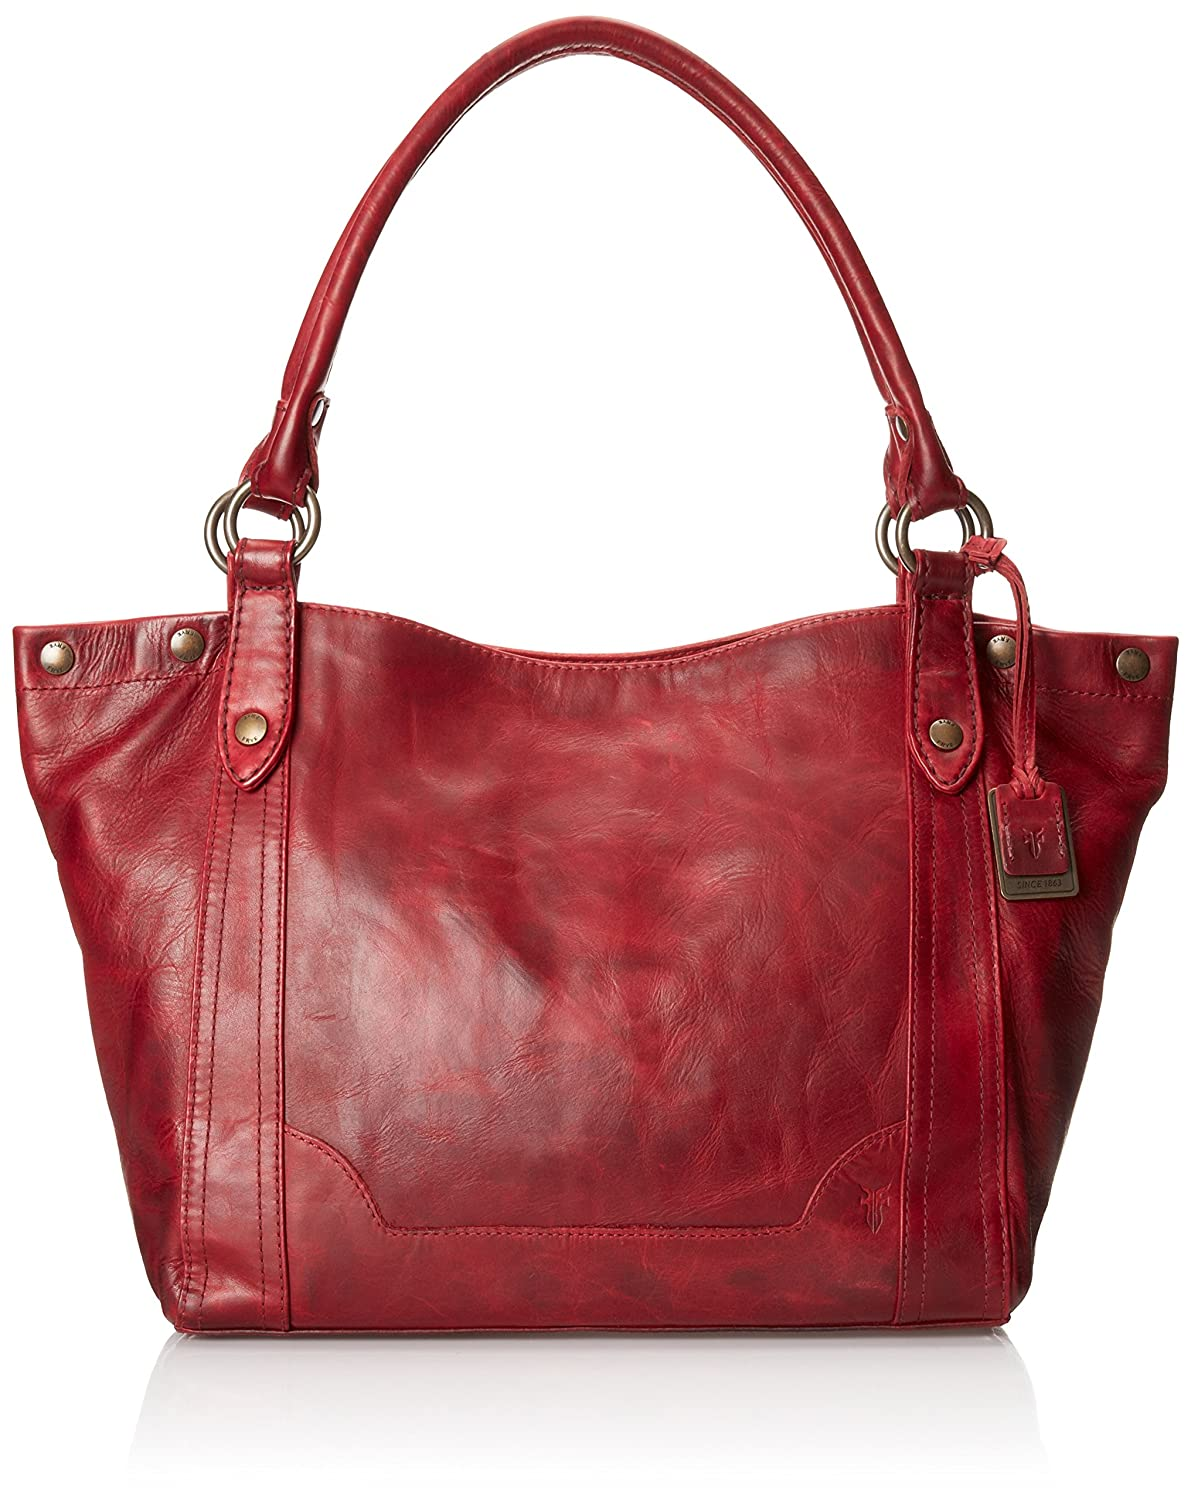 Frye Vintage Stud Shoulder Bag Burnt Red 5